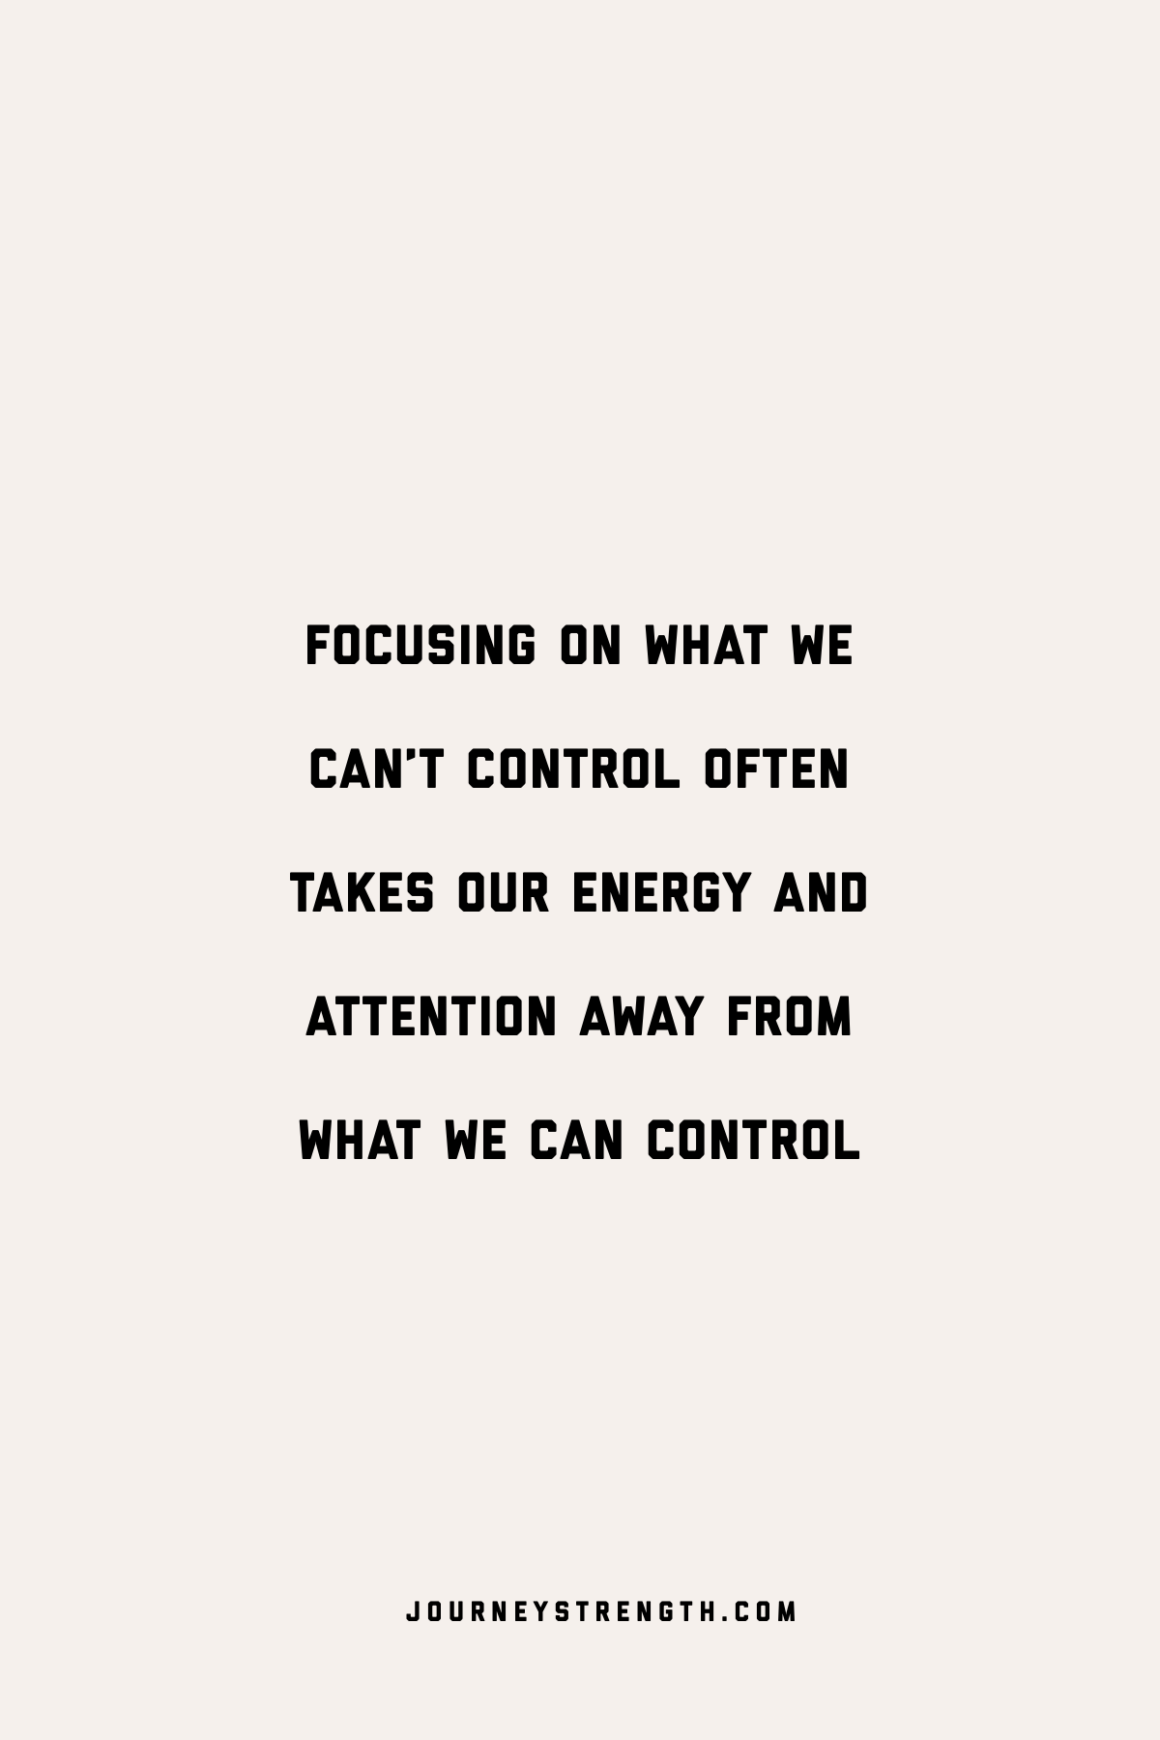 focusing on what we can't control often takes our energy and attention away from what we can control